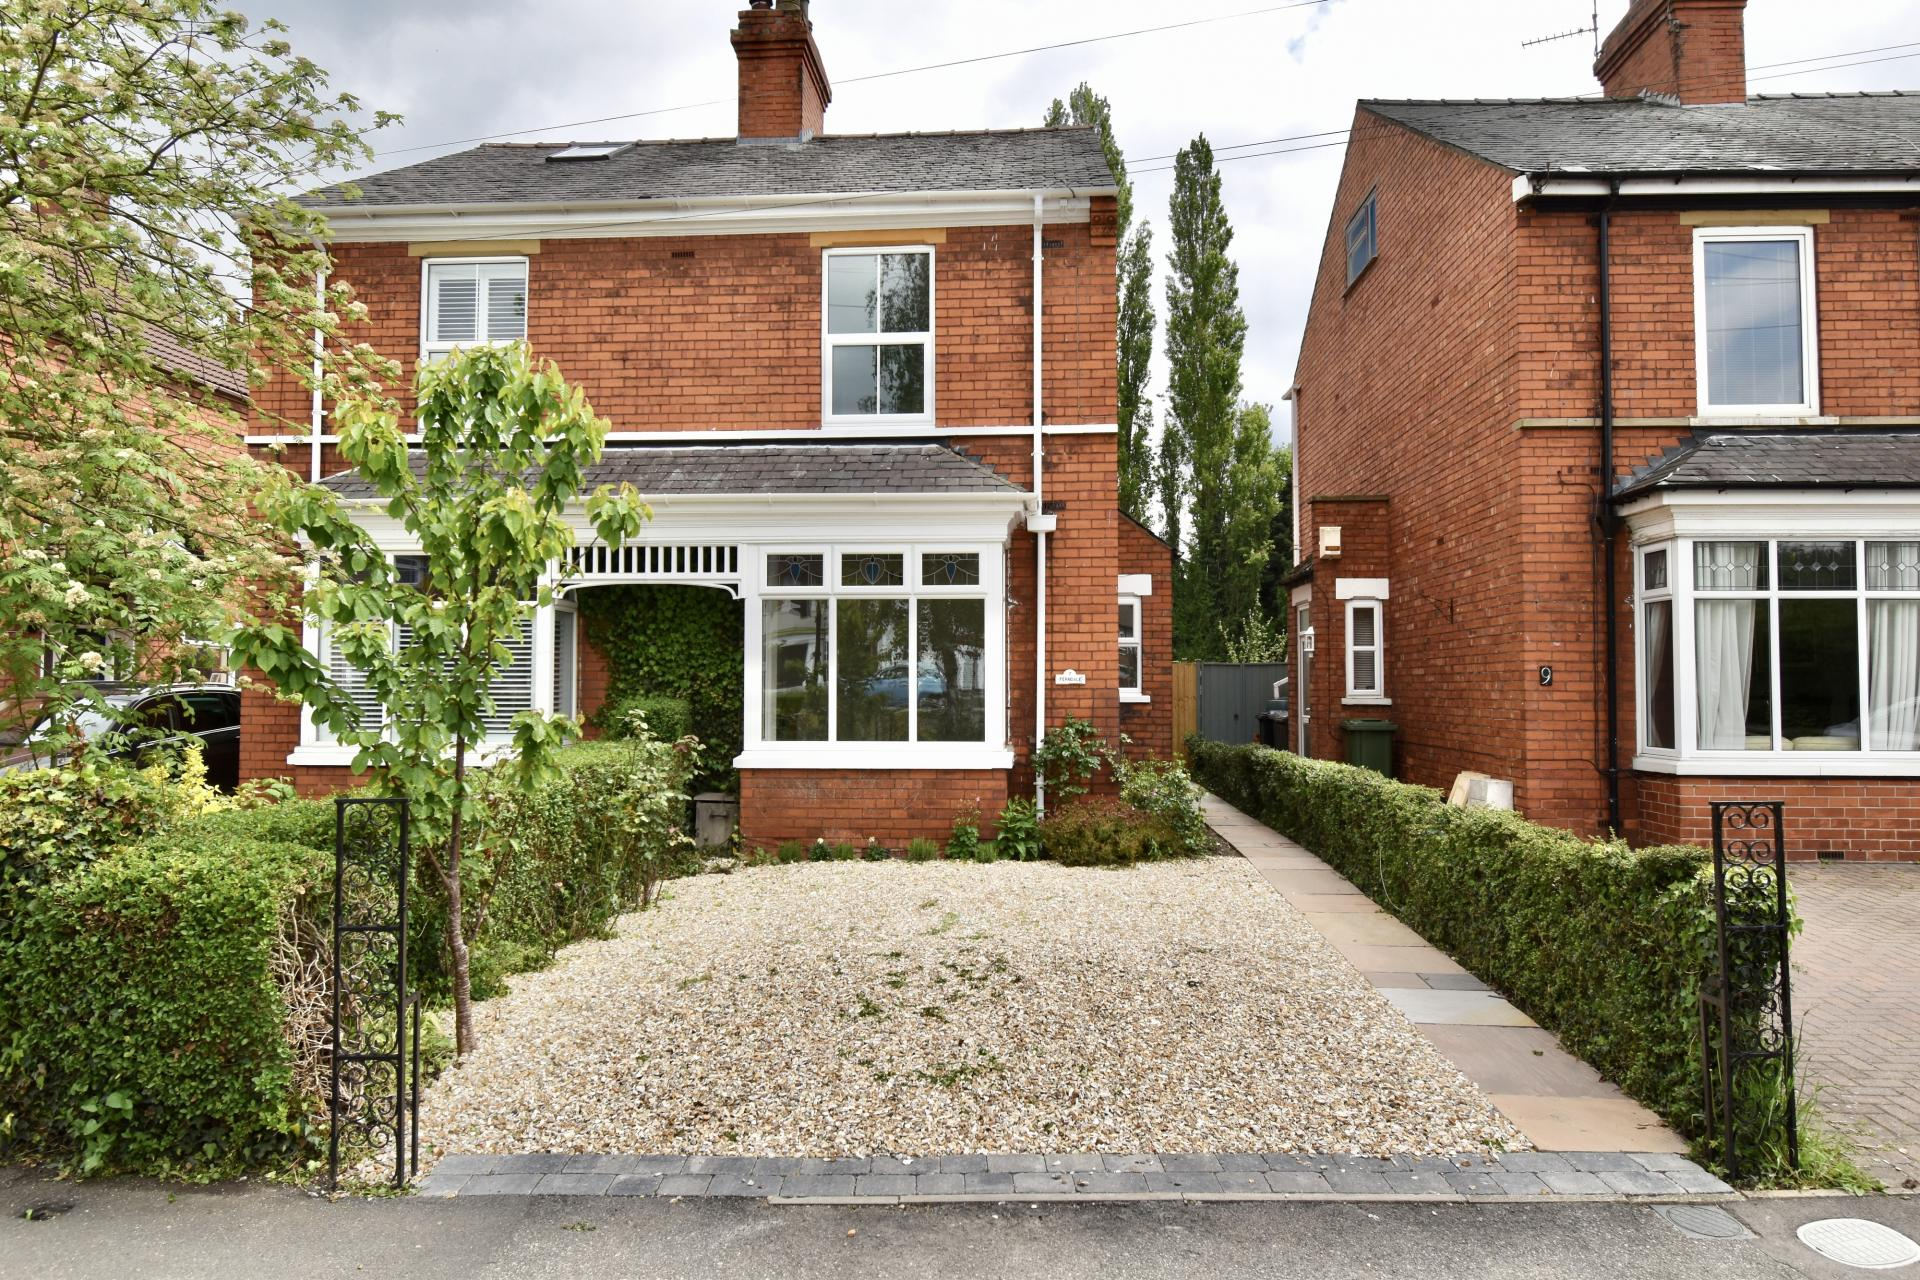 Mundys (Lincoln) pretty house for sale